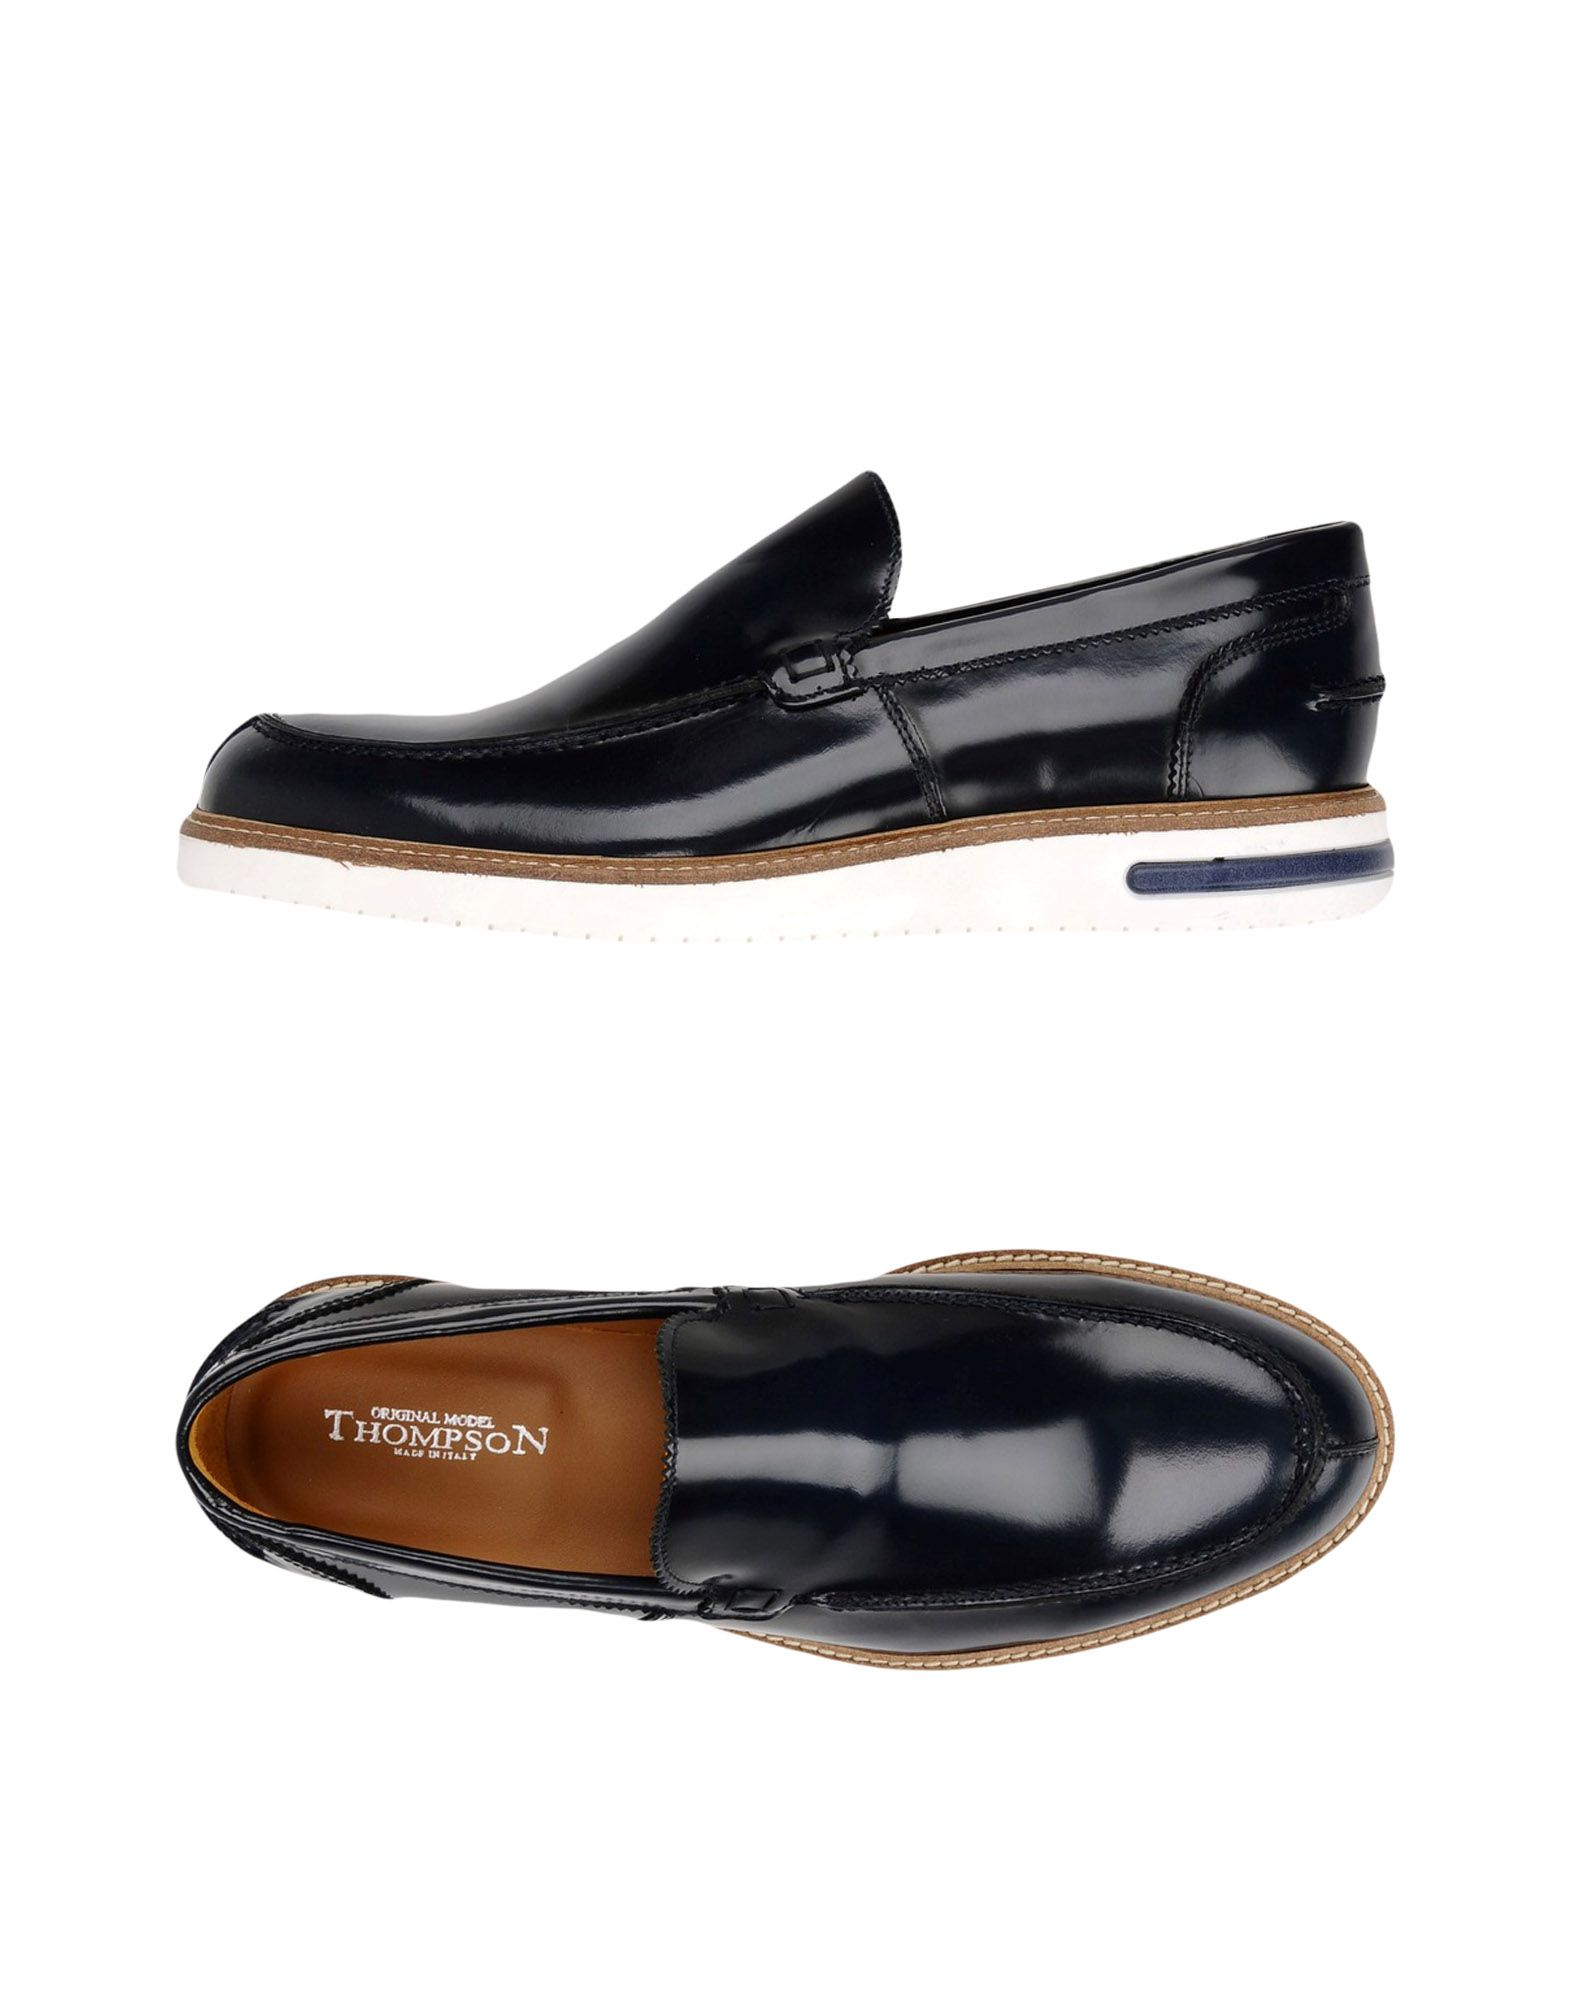 Mocassino Thompson Uomo - Acquista online su